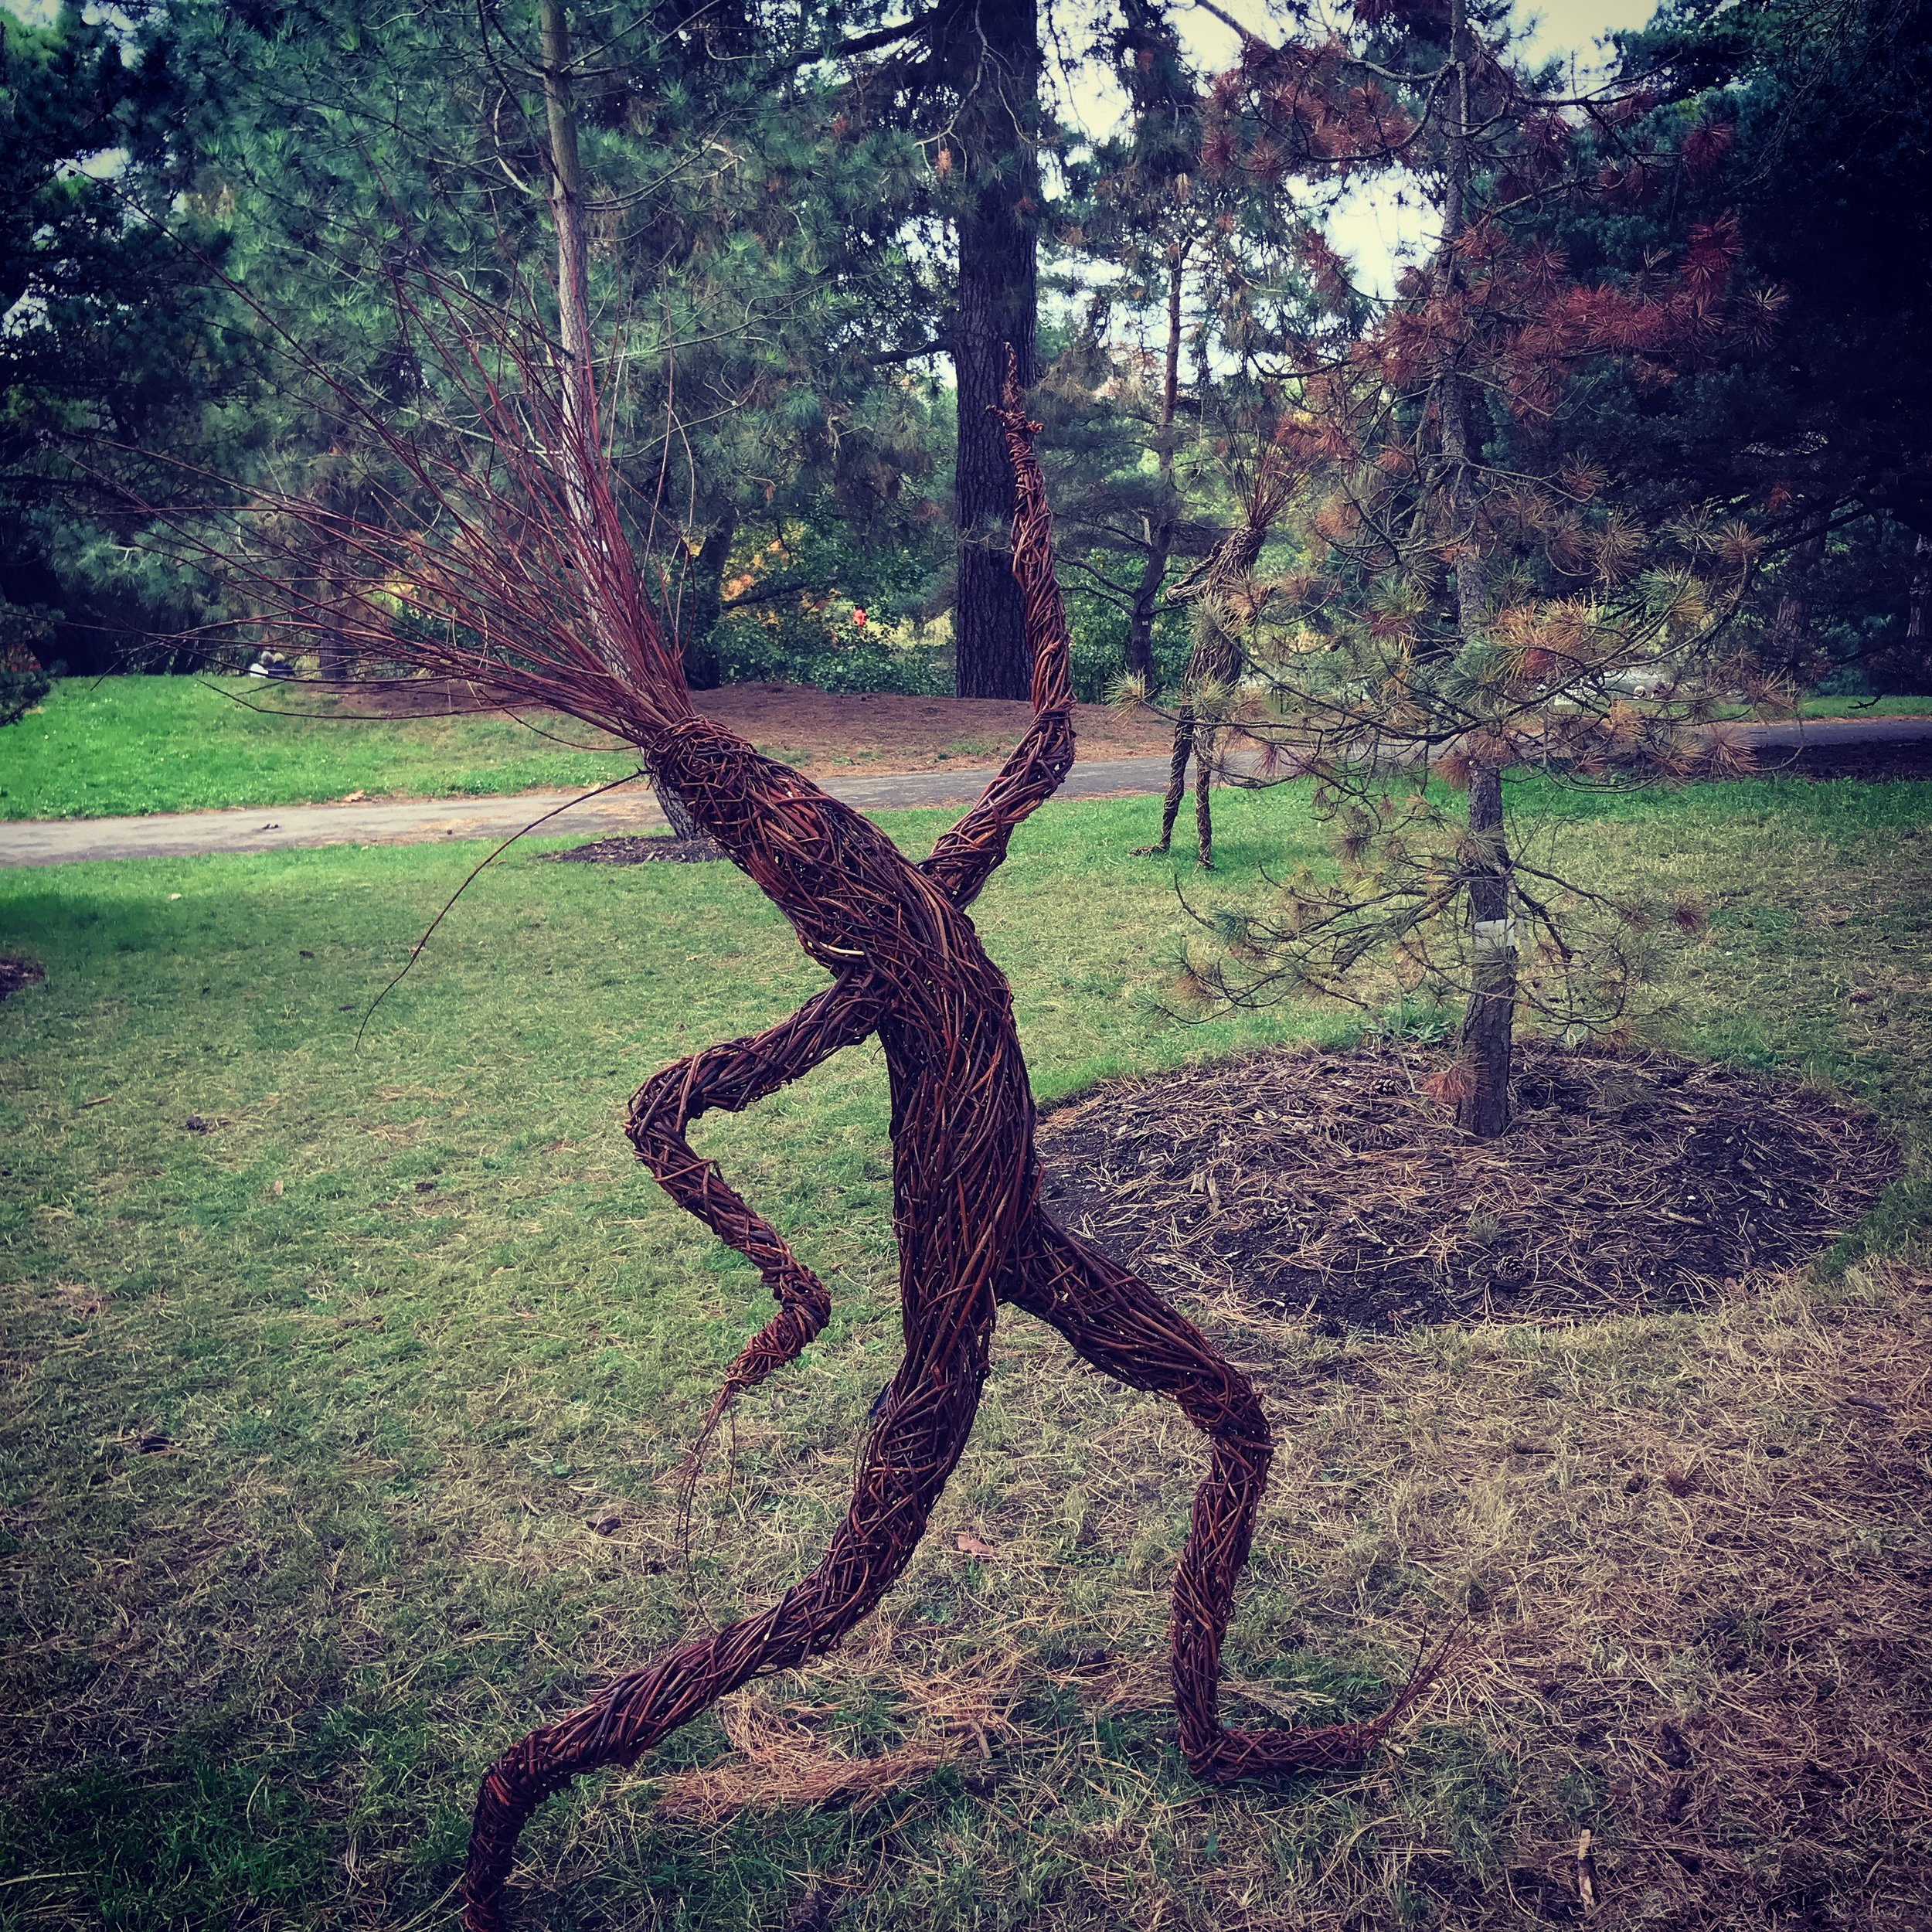 I was inspired by the dancing stick men at Kew Gardens.